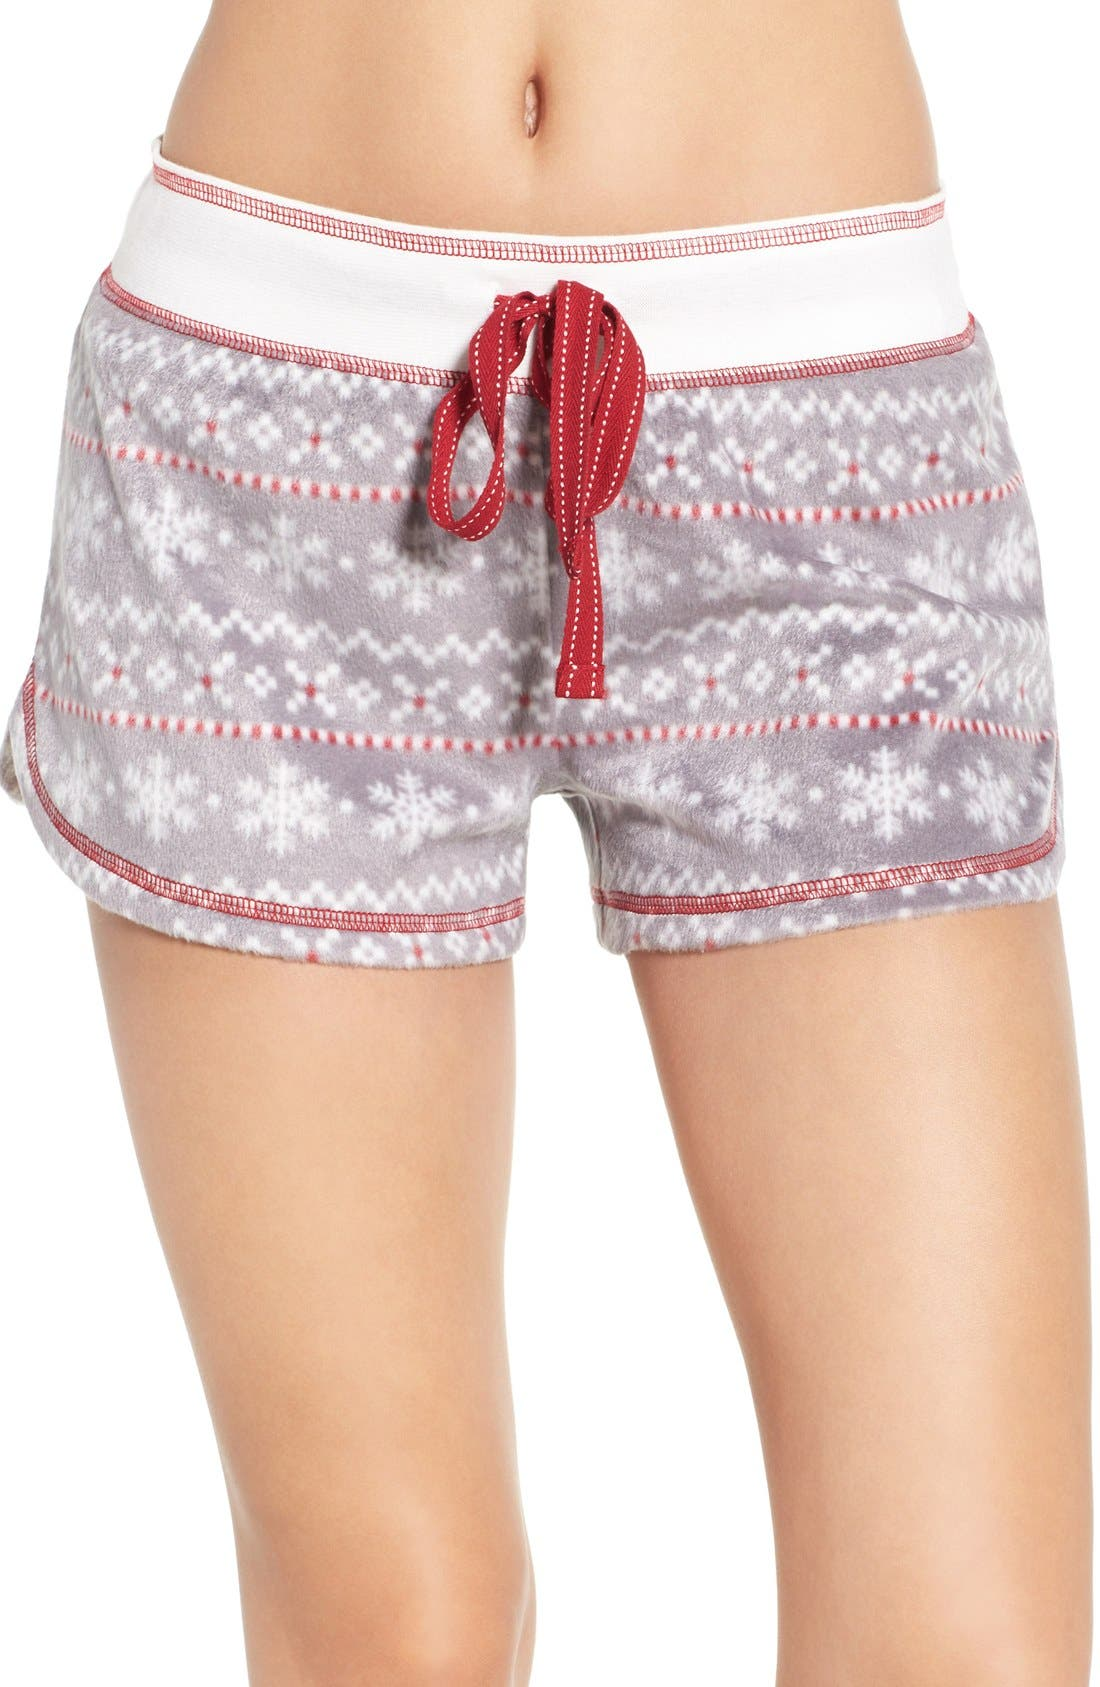 Polar Fleece Shorts,                             Main thumbnail 1, color,                             Grey